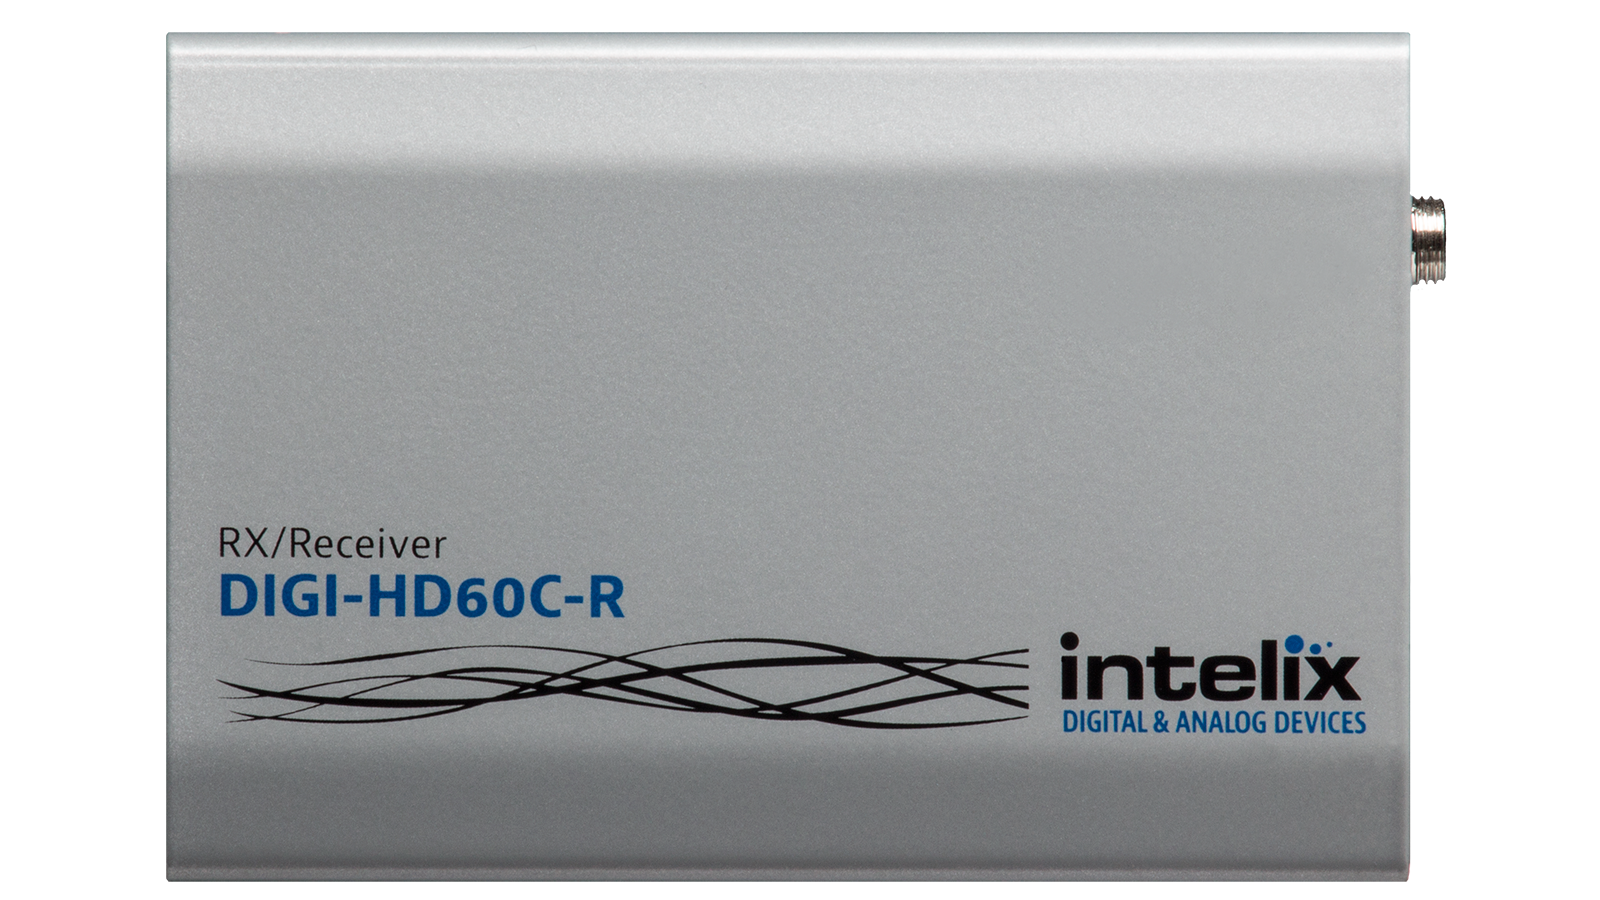 Digi Hd60c R Hdbaset Hdmi Over Twisted Pair Receiver With Power Set Wiring Diagram And Control